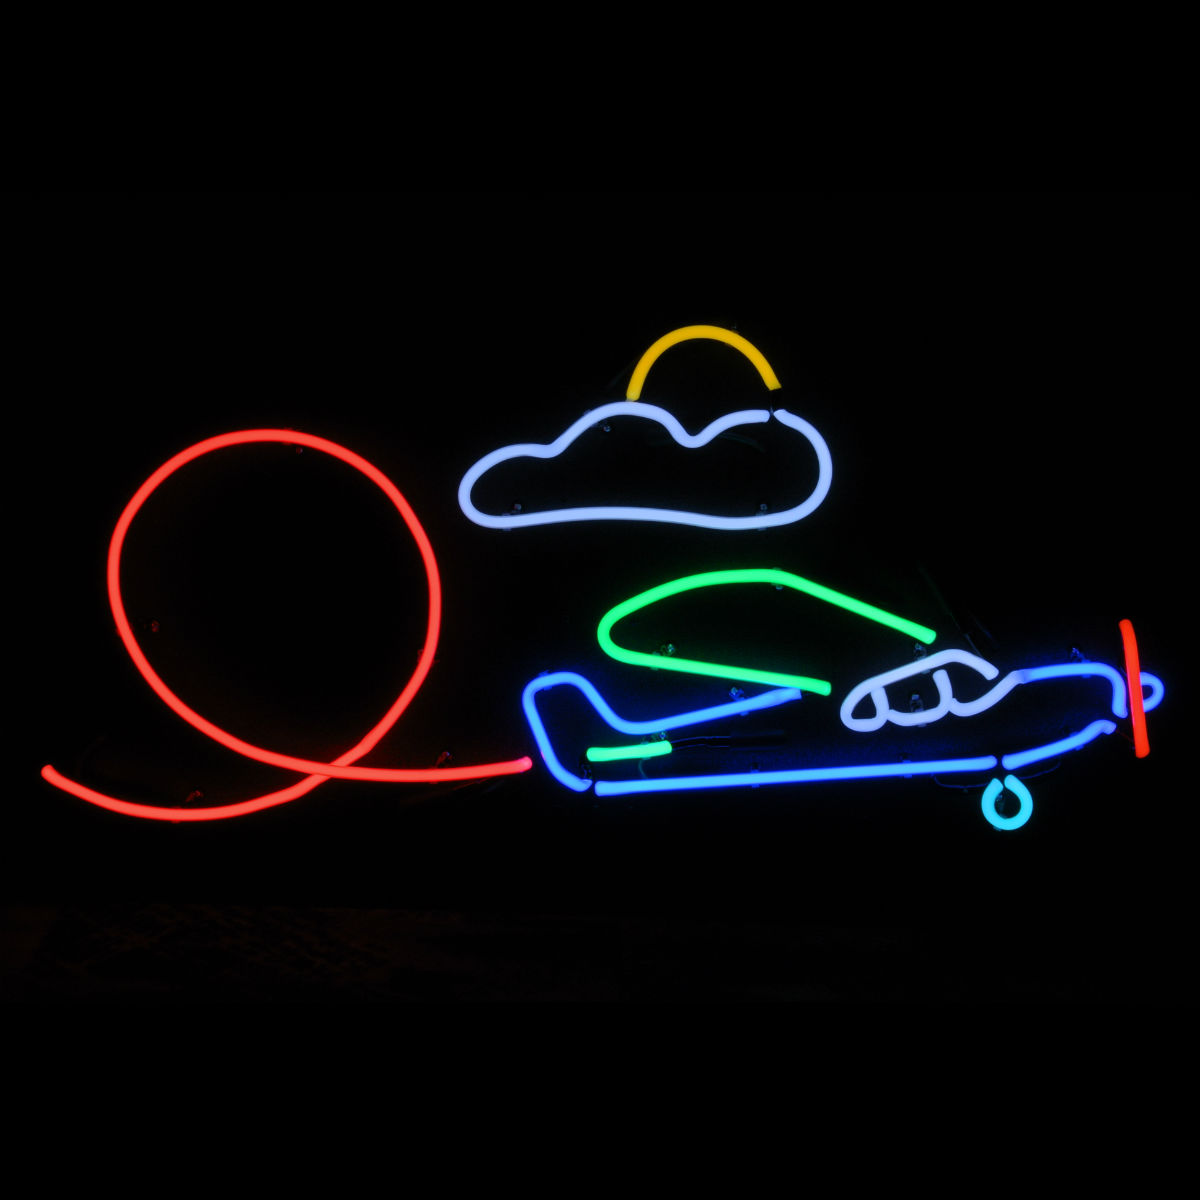 AIRPLANE NEON LIGHT ARTWORKS by John Barton - Famous USA Neon Glass Artist - BartonNeonMagic.com